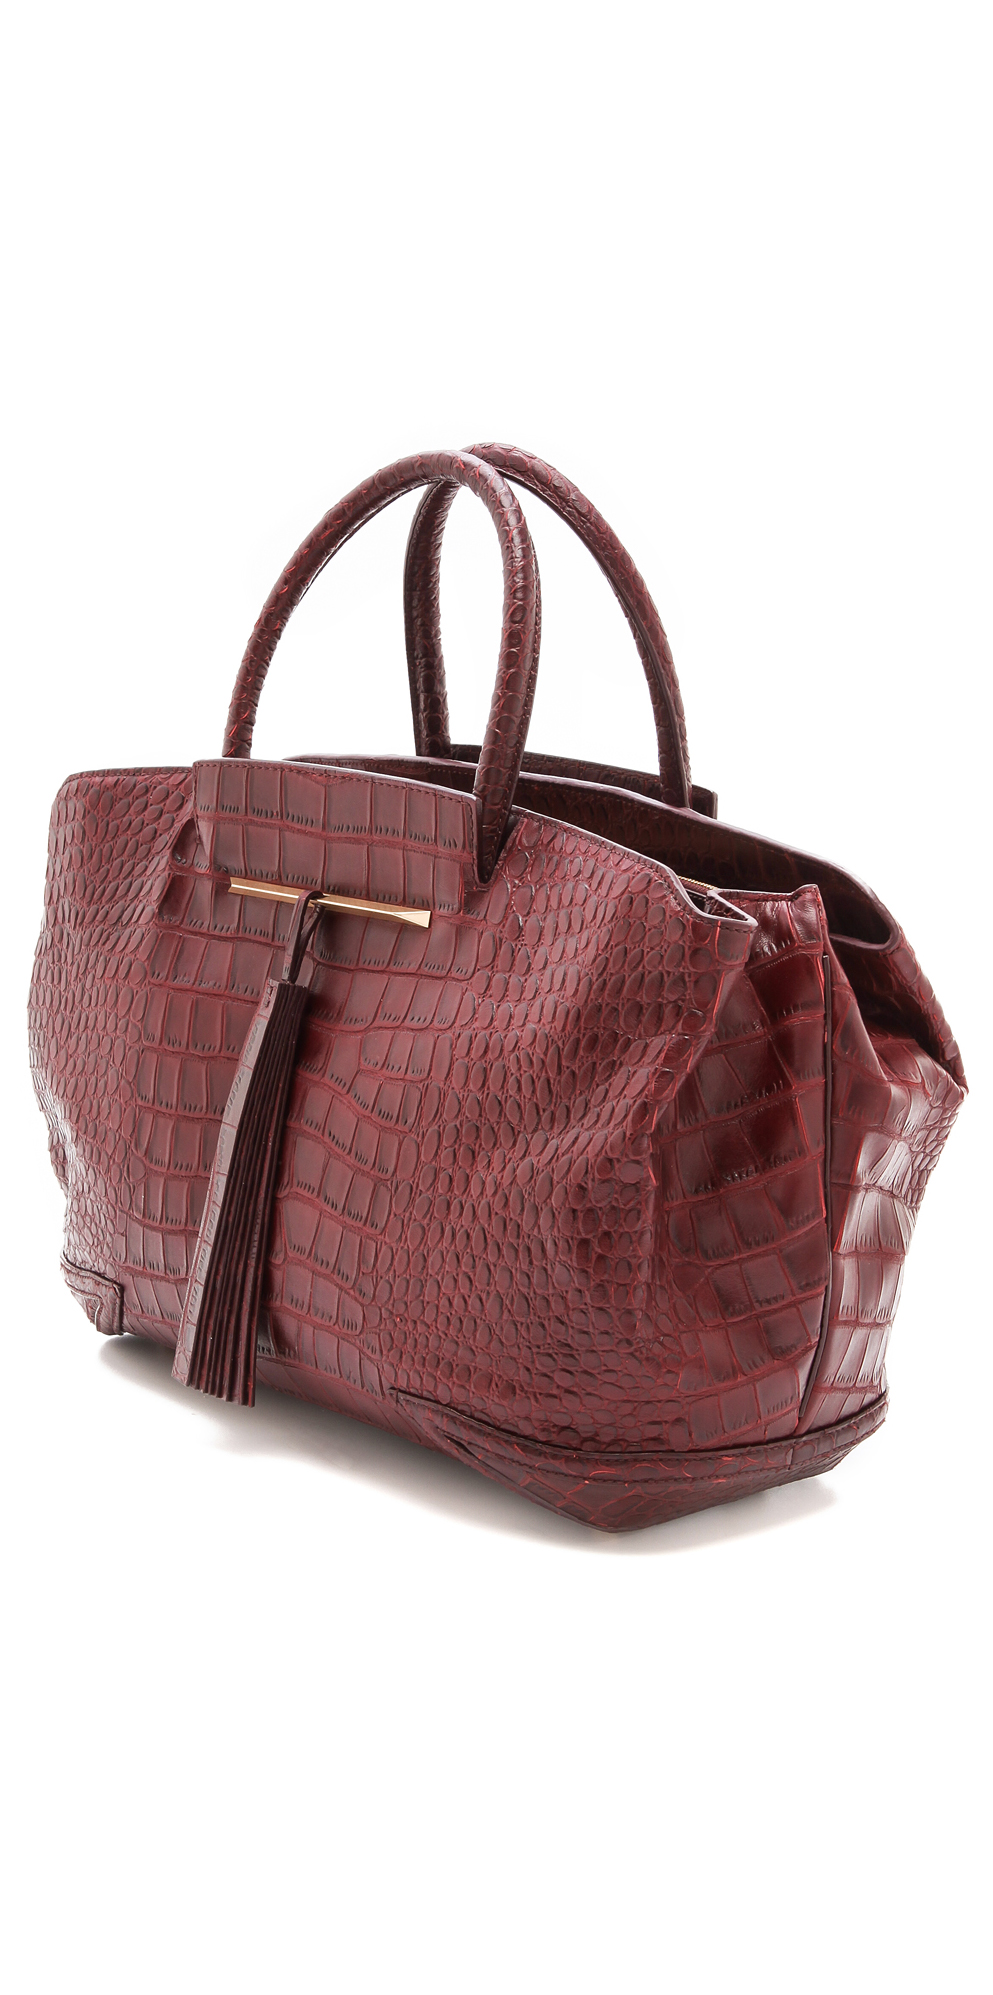 B Brian Atwood Croc Embossed Grace Bag